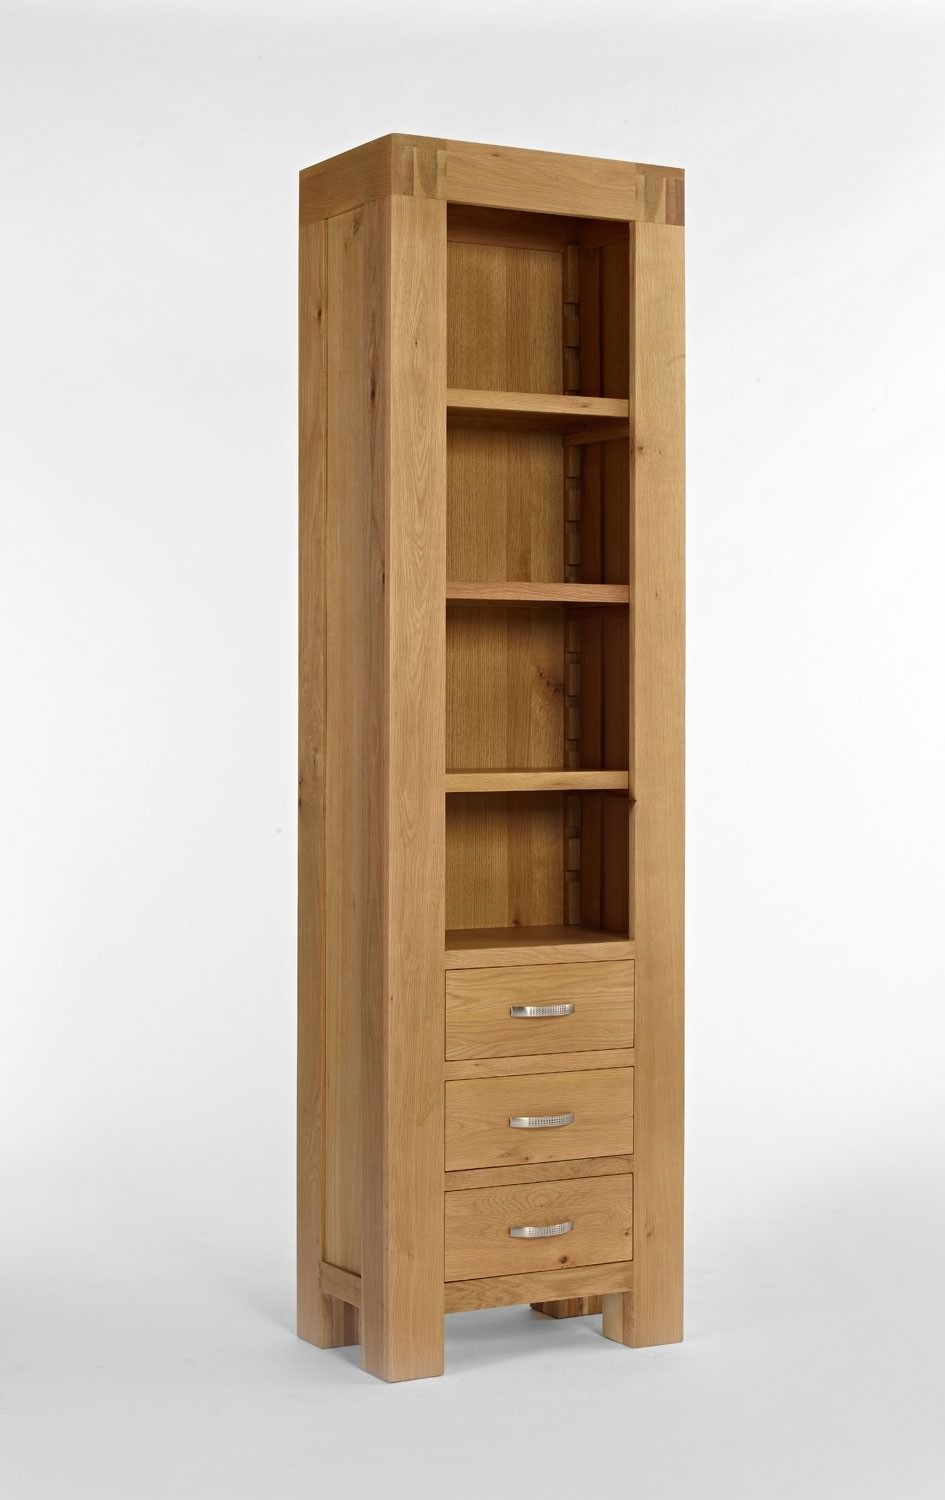 Santana Blonde Oak Slim Bookcase This Range Is Crafted From